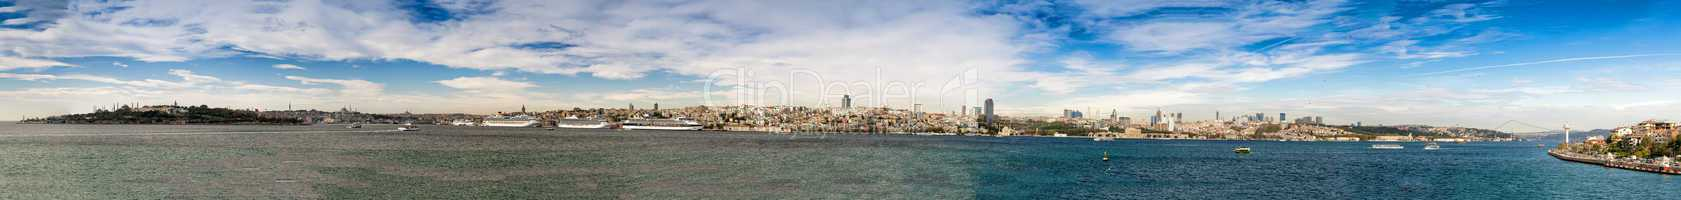 Complete panoramic view of Istanbul from Maiden's Tower